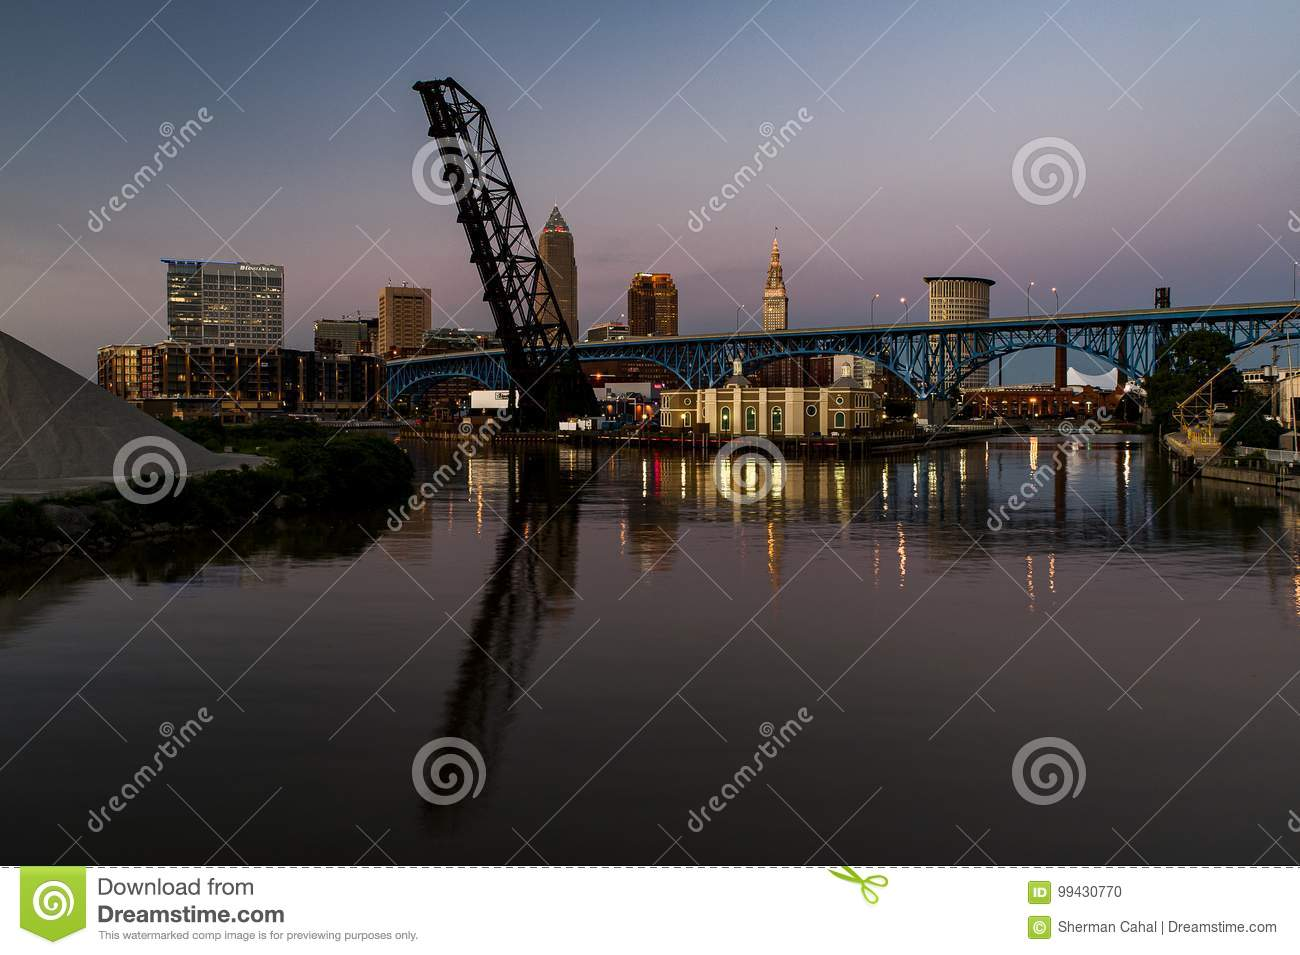 Blue / Golden Hour / Sunset - Cleveland, Ohio Skyline with Bridges